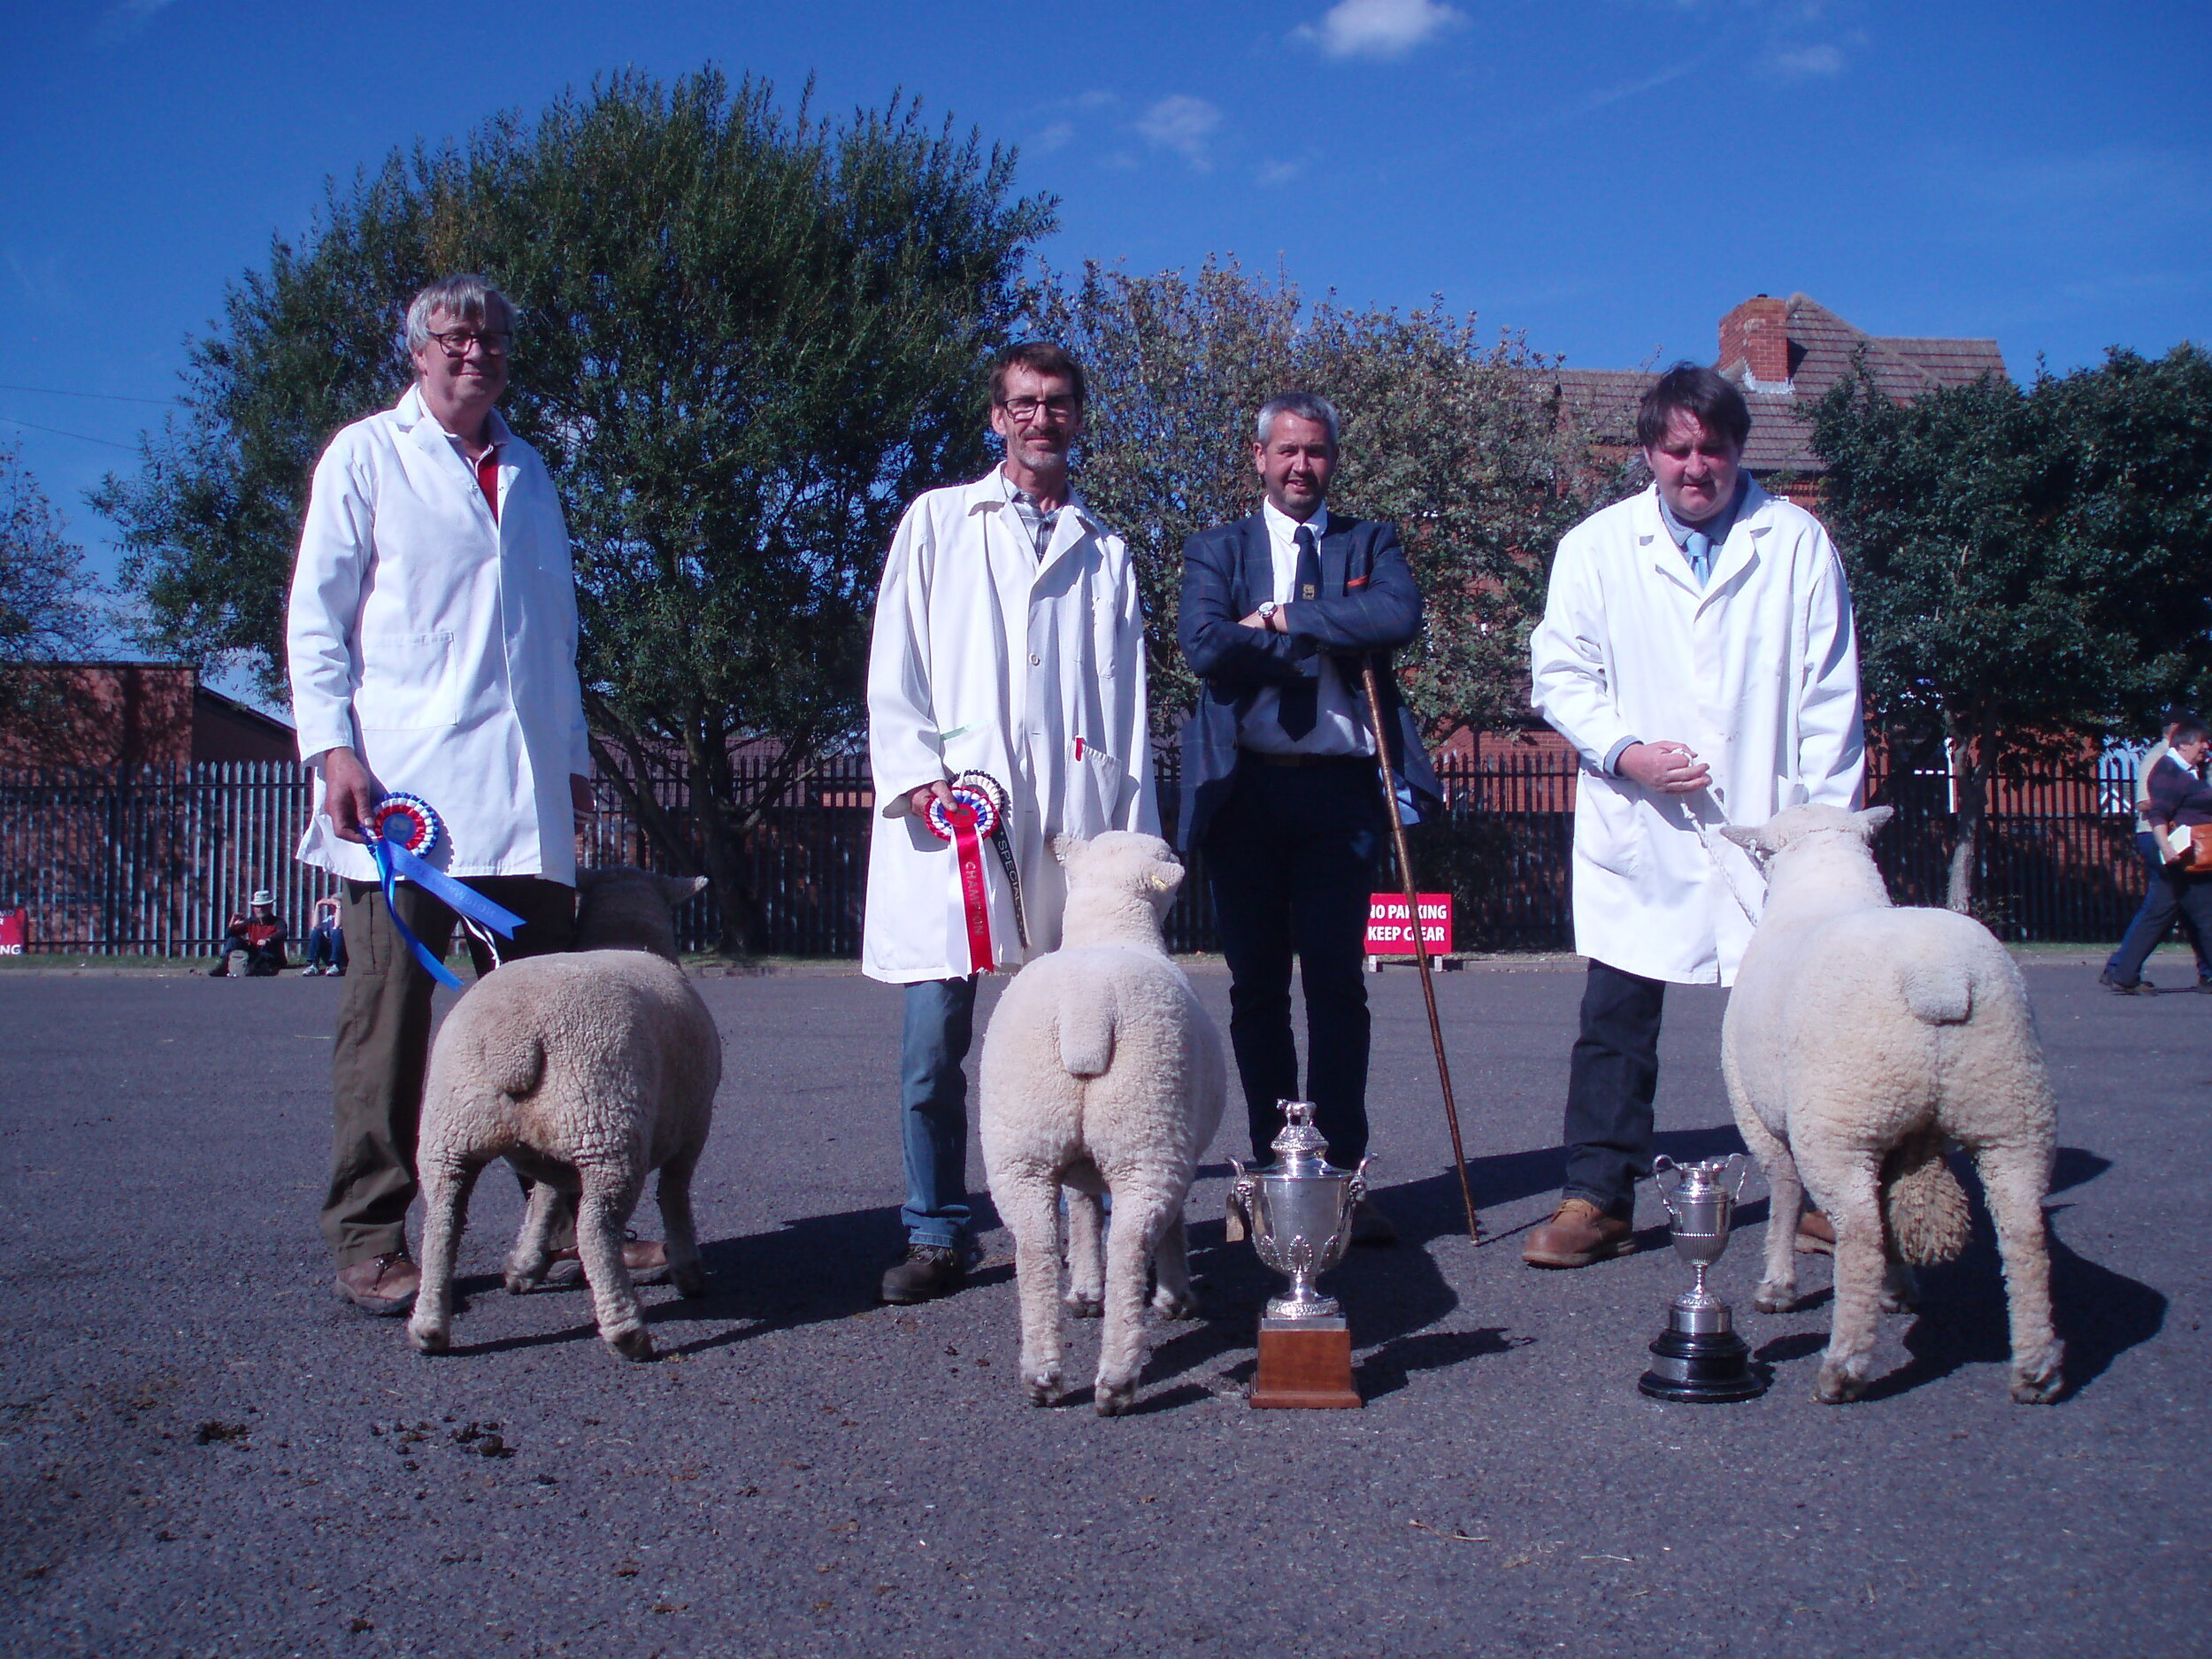 Judge Jonathan Long with the champions: left to right: P Goldsworthy's shearling ewe, D, S & P Humphrey's shearling ewe and shearling ram.